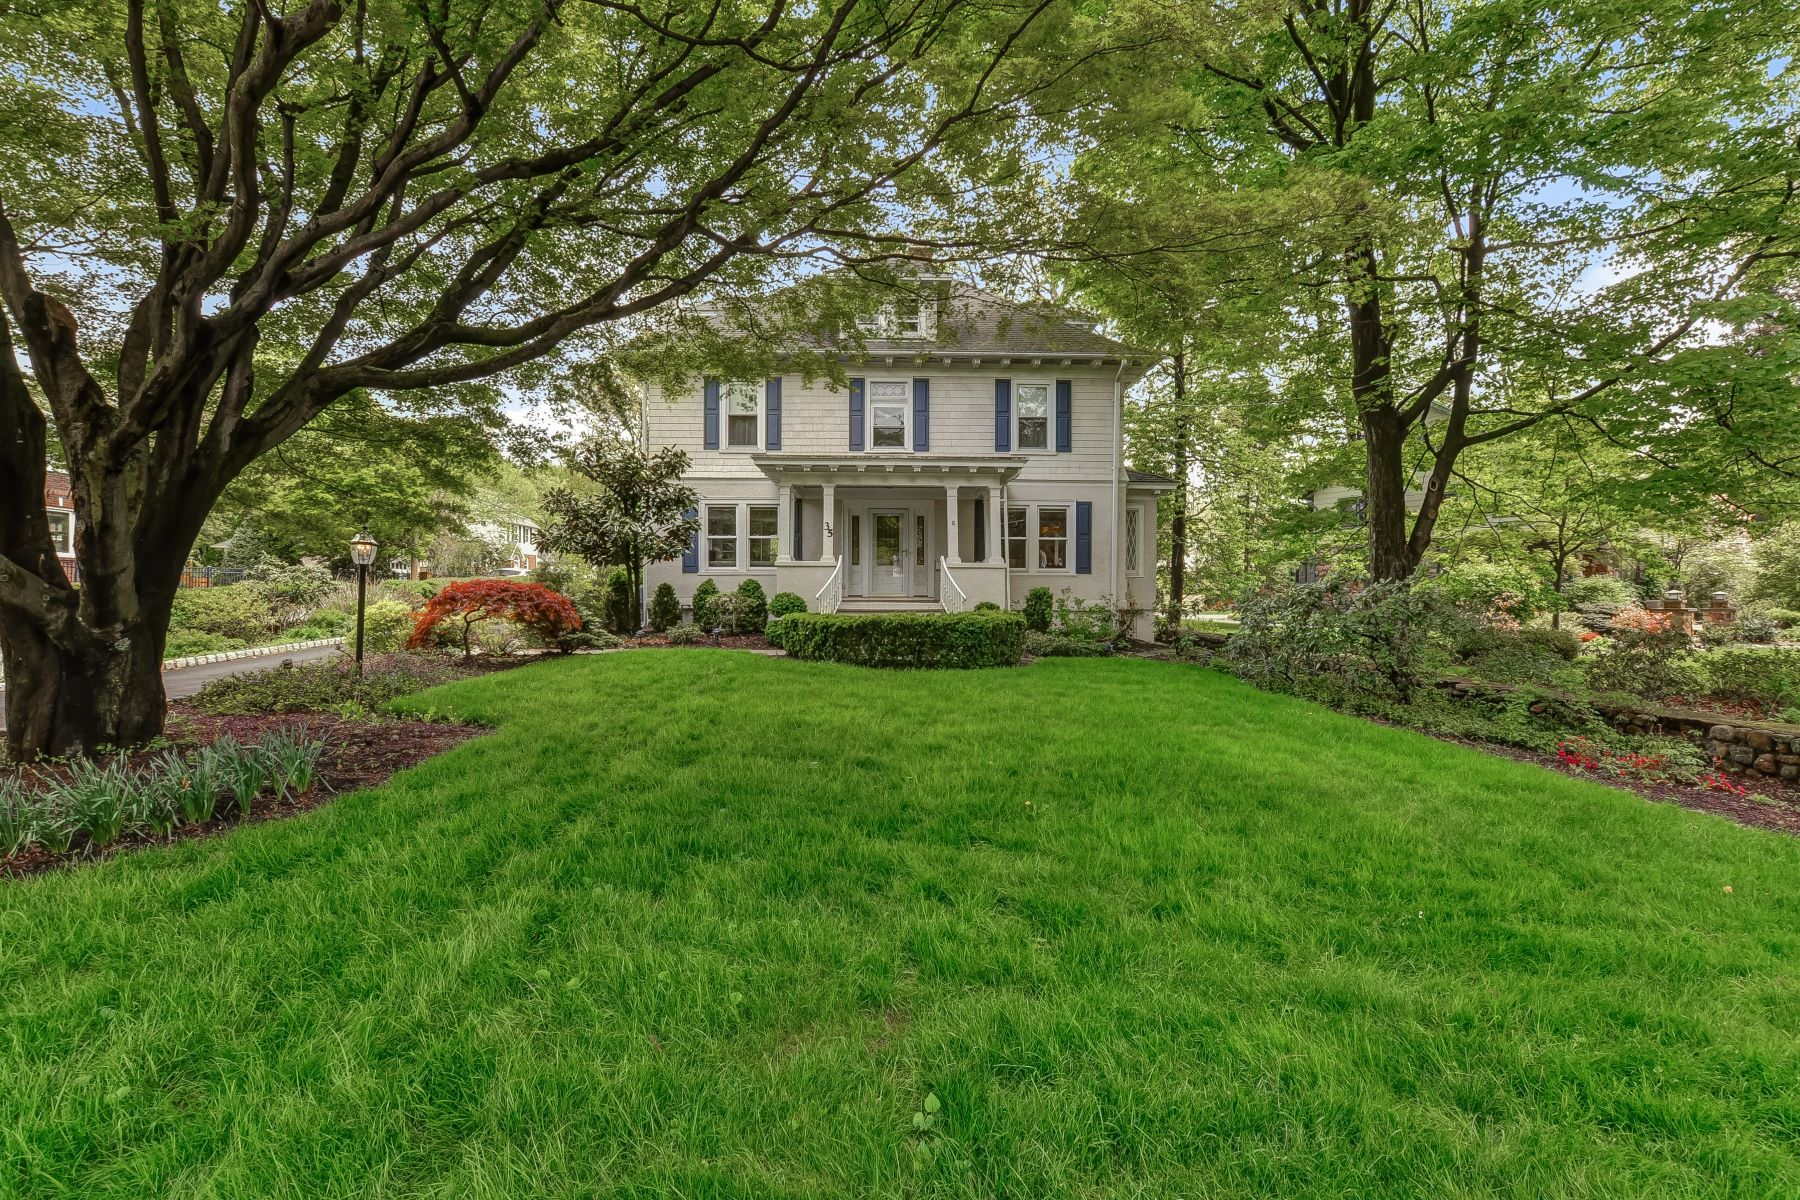 Single Family Home for Sale at Charming & Elegant 35 Littleton Road, Morris Plains, New Jersey 07950 United States